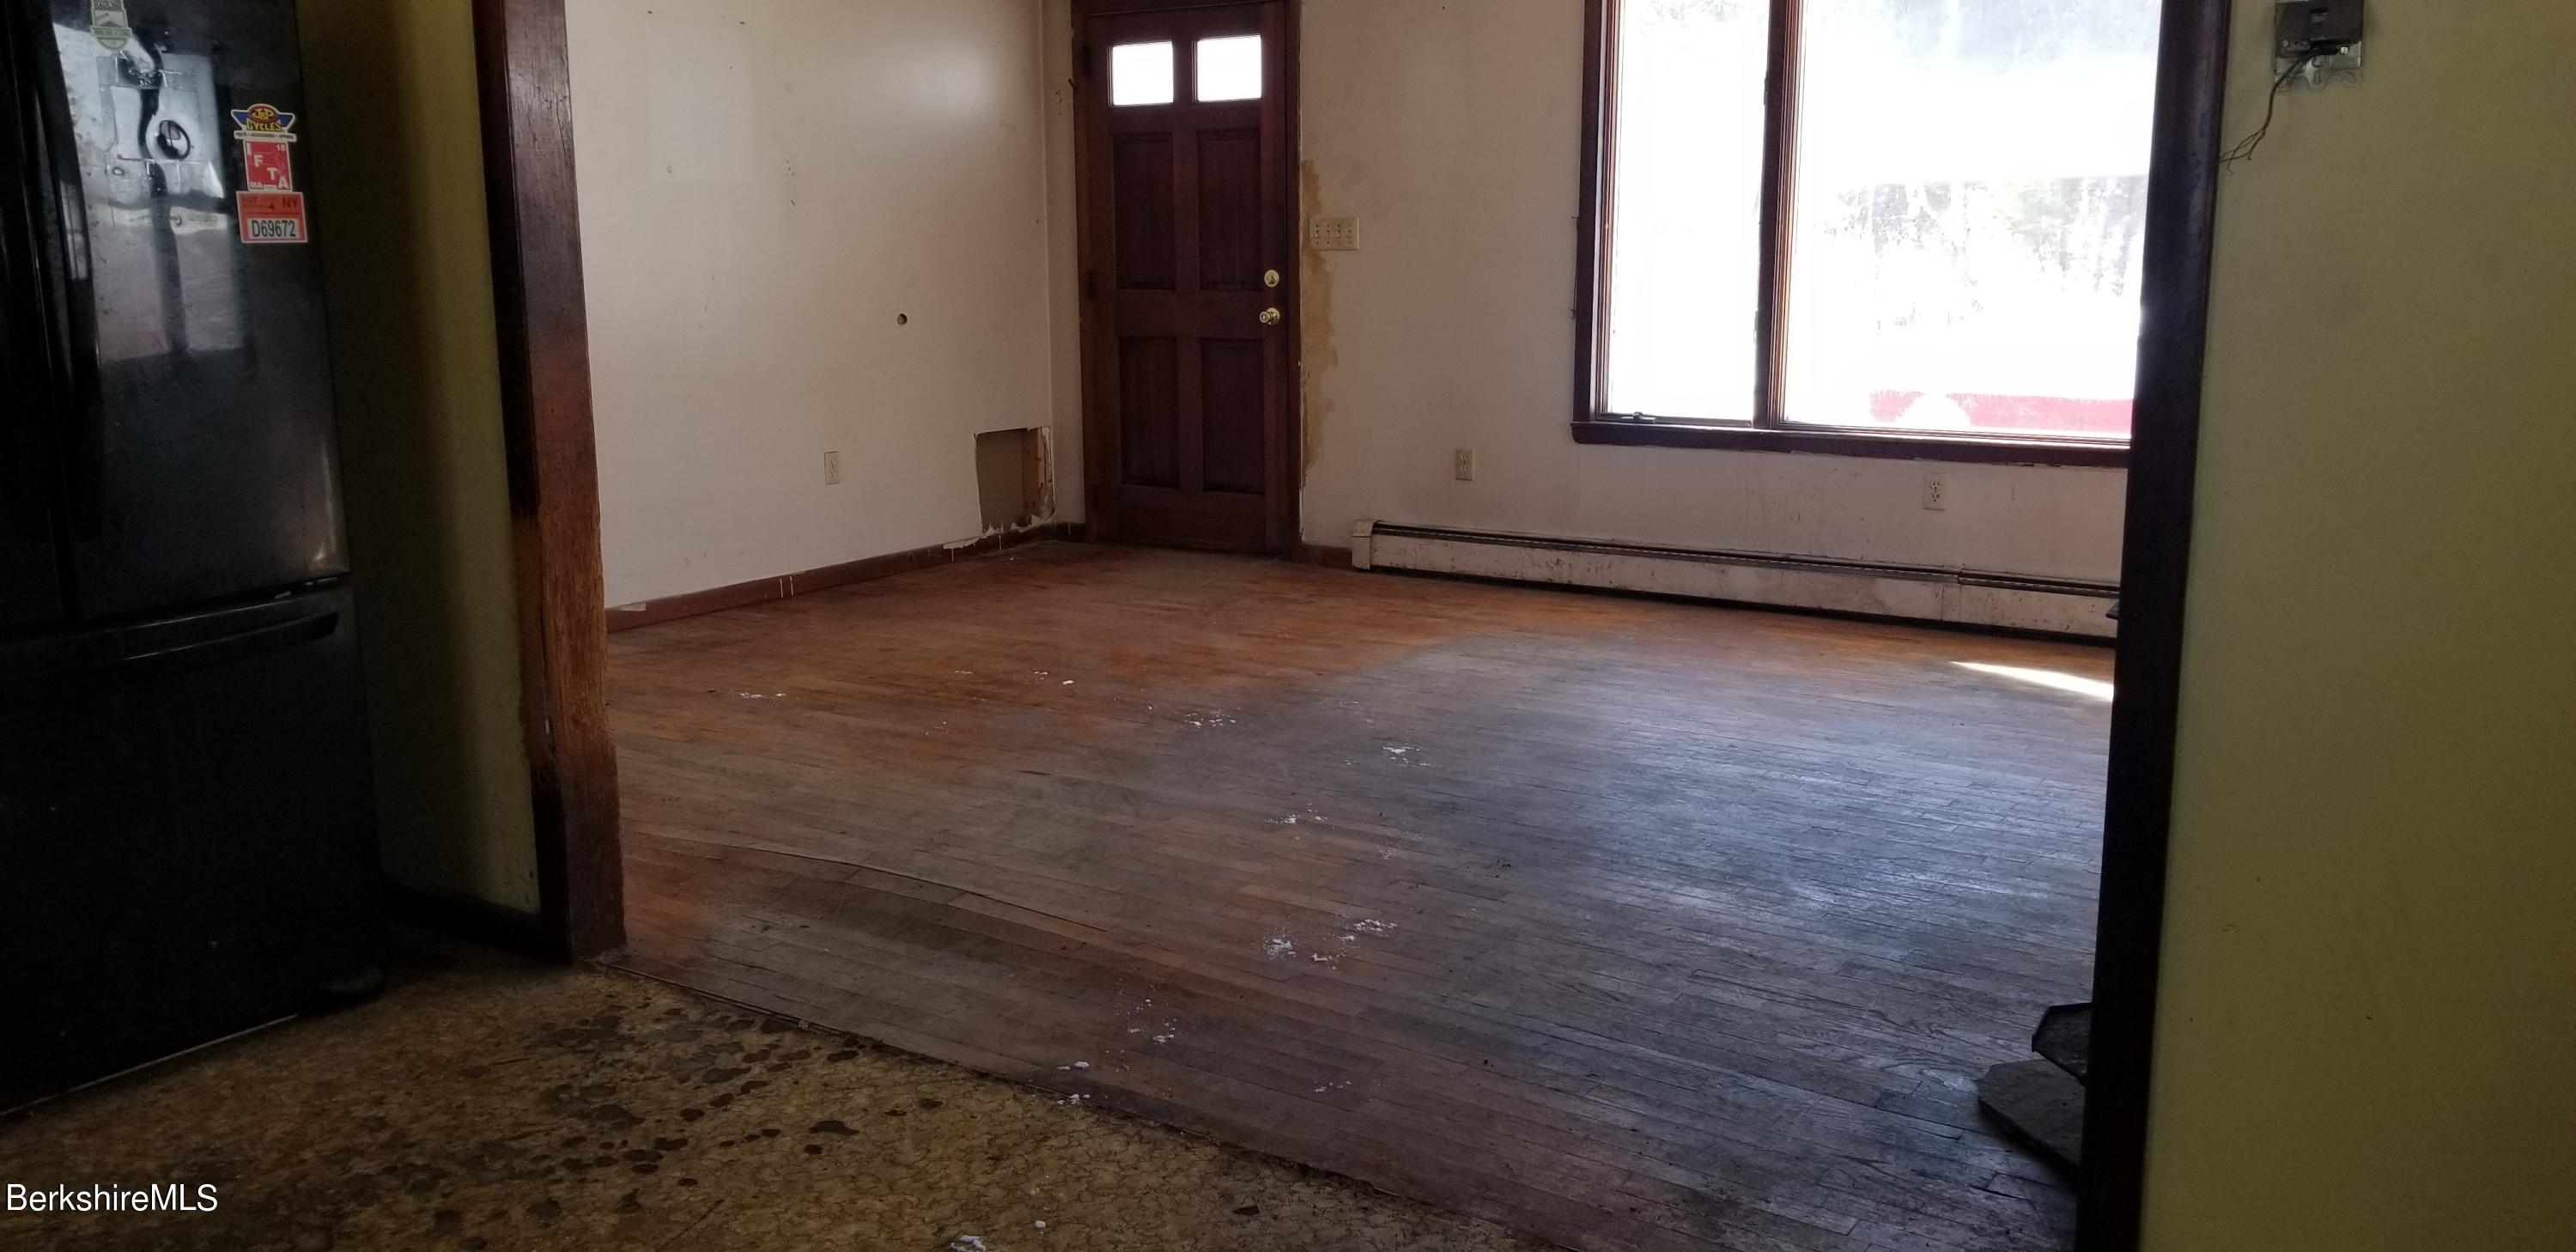 Property located at 236 Sandisfield Rd Sandisfield MA 01255 photo